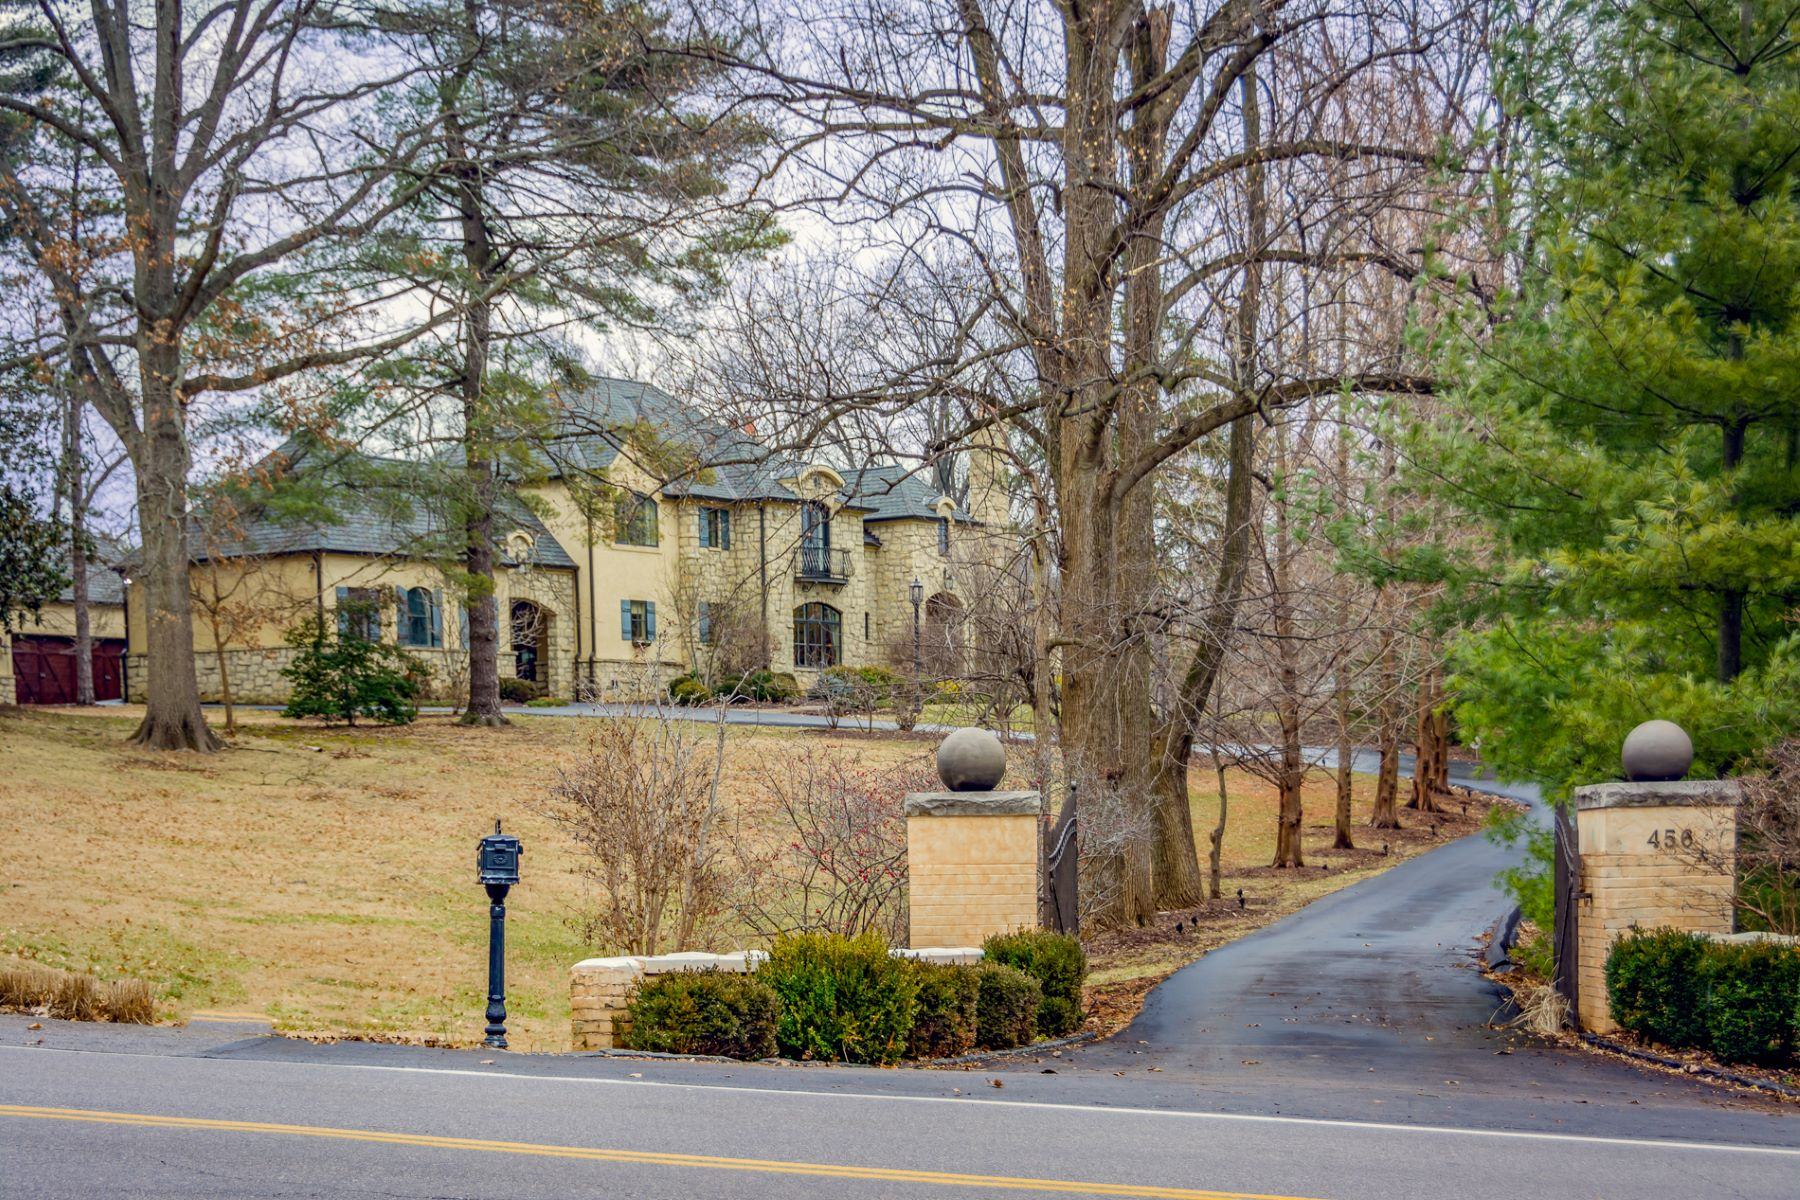 Property for Sale at Tuscan Estate in Ladue Ladue, Missouri 63124 United States